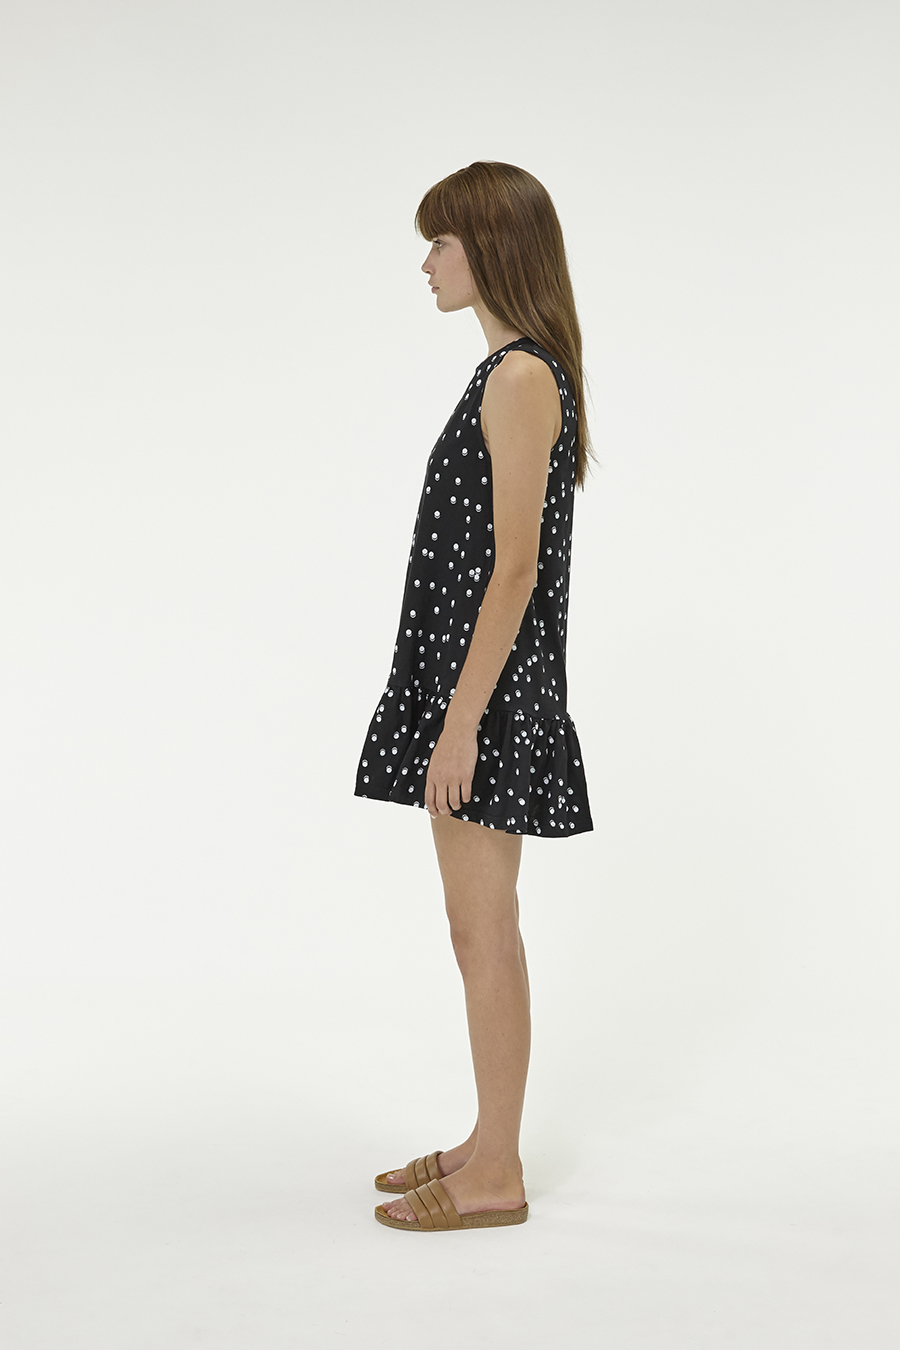 Huffer_Q3-16_W-Port-Volley-Dress_Black-02